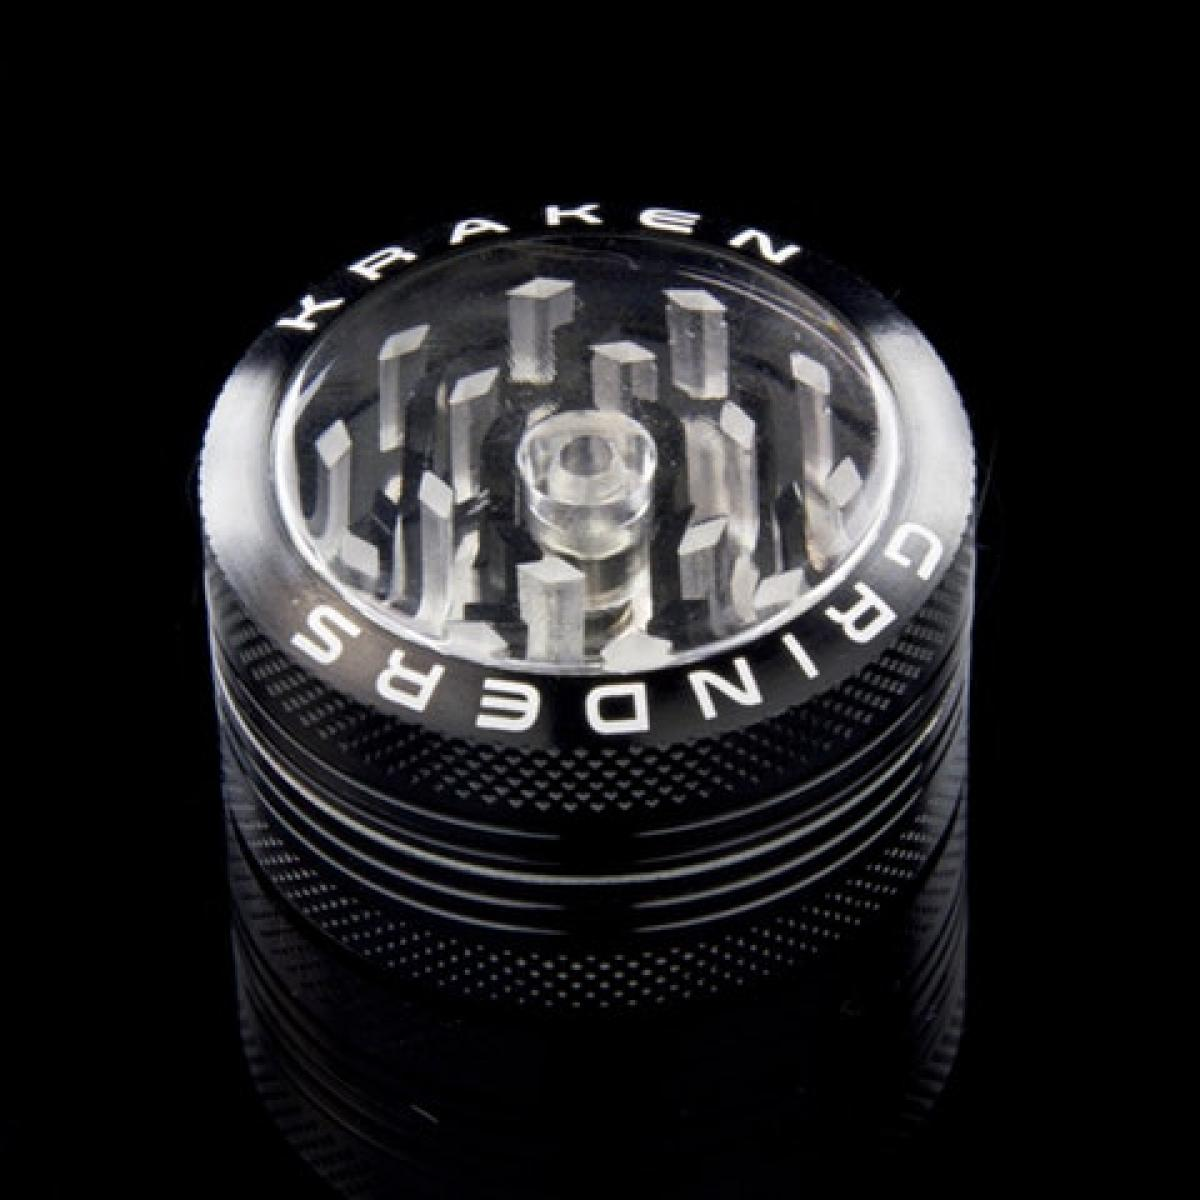 Kraken 1.5 inch 2-part Grinder with Clear Top and Push-up Bottom